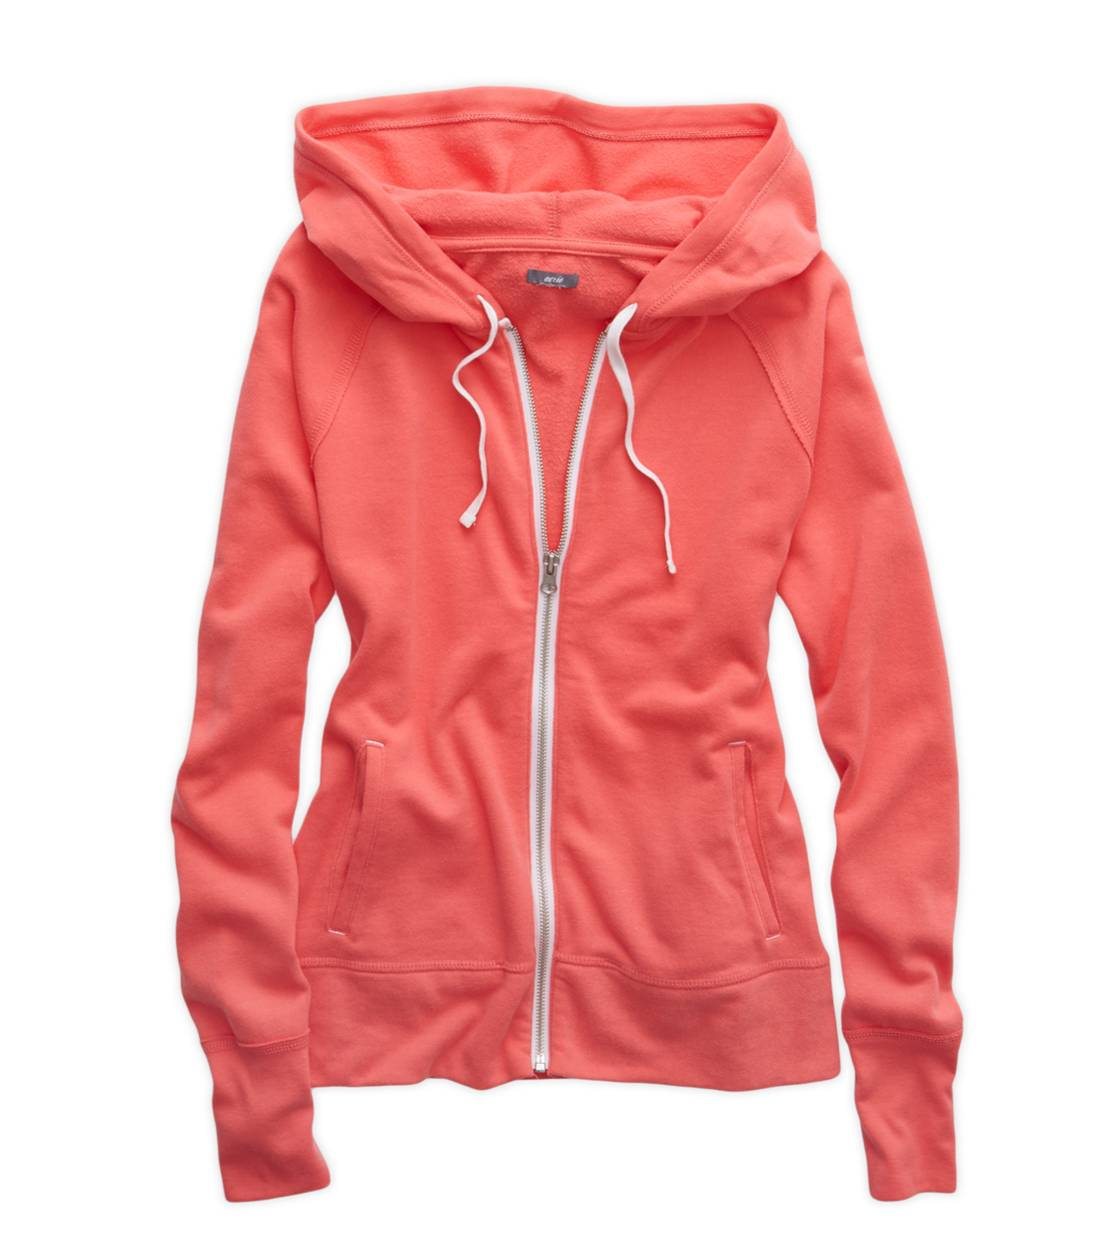 Whipped Strawberry Aerie Full Zip Hooded Sweatshirt